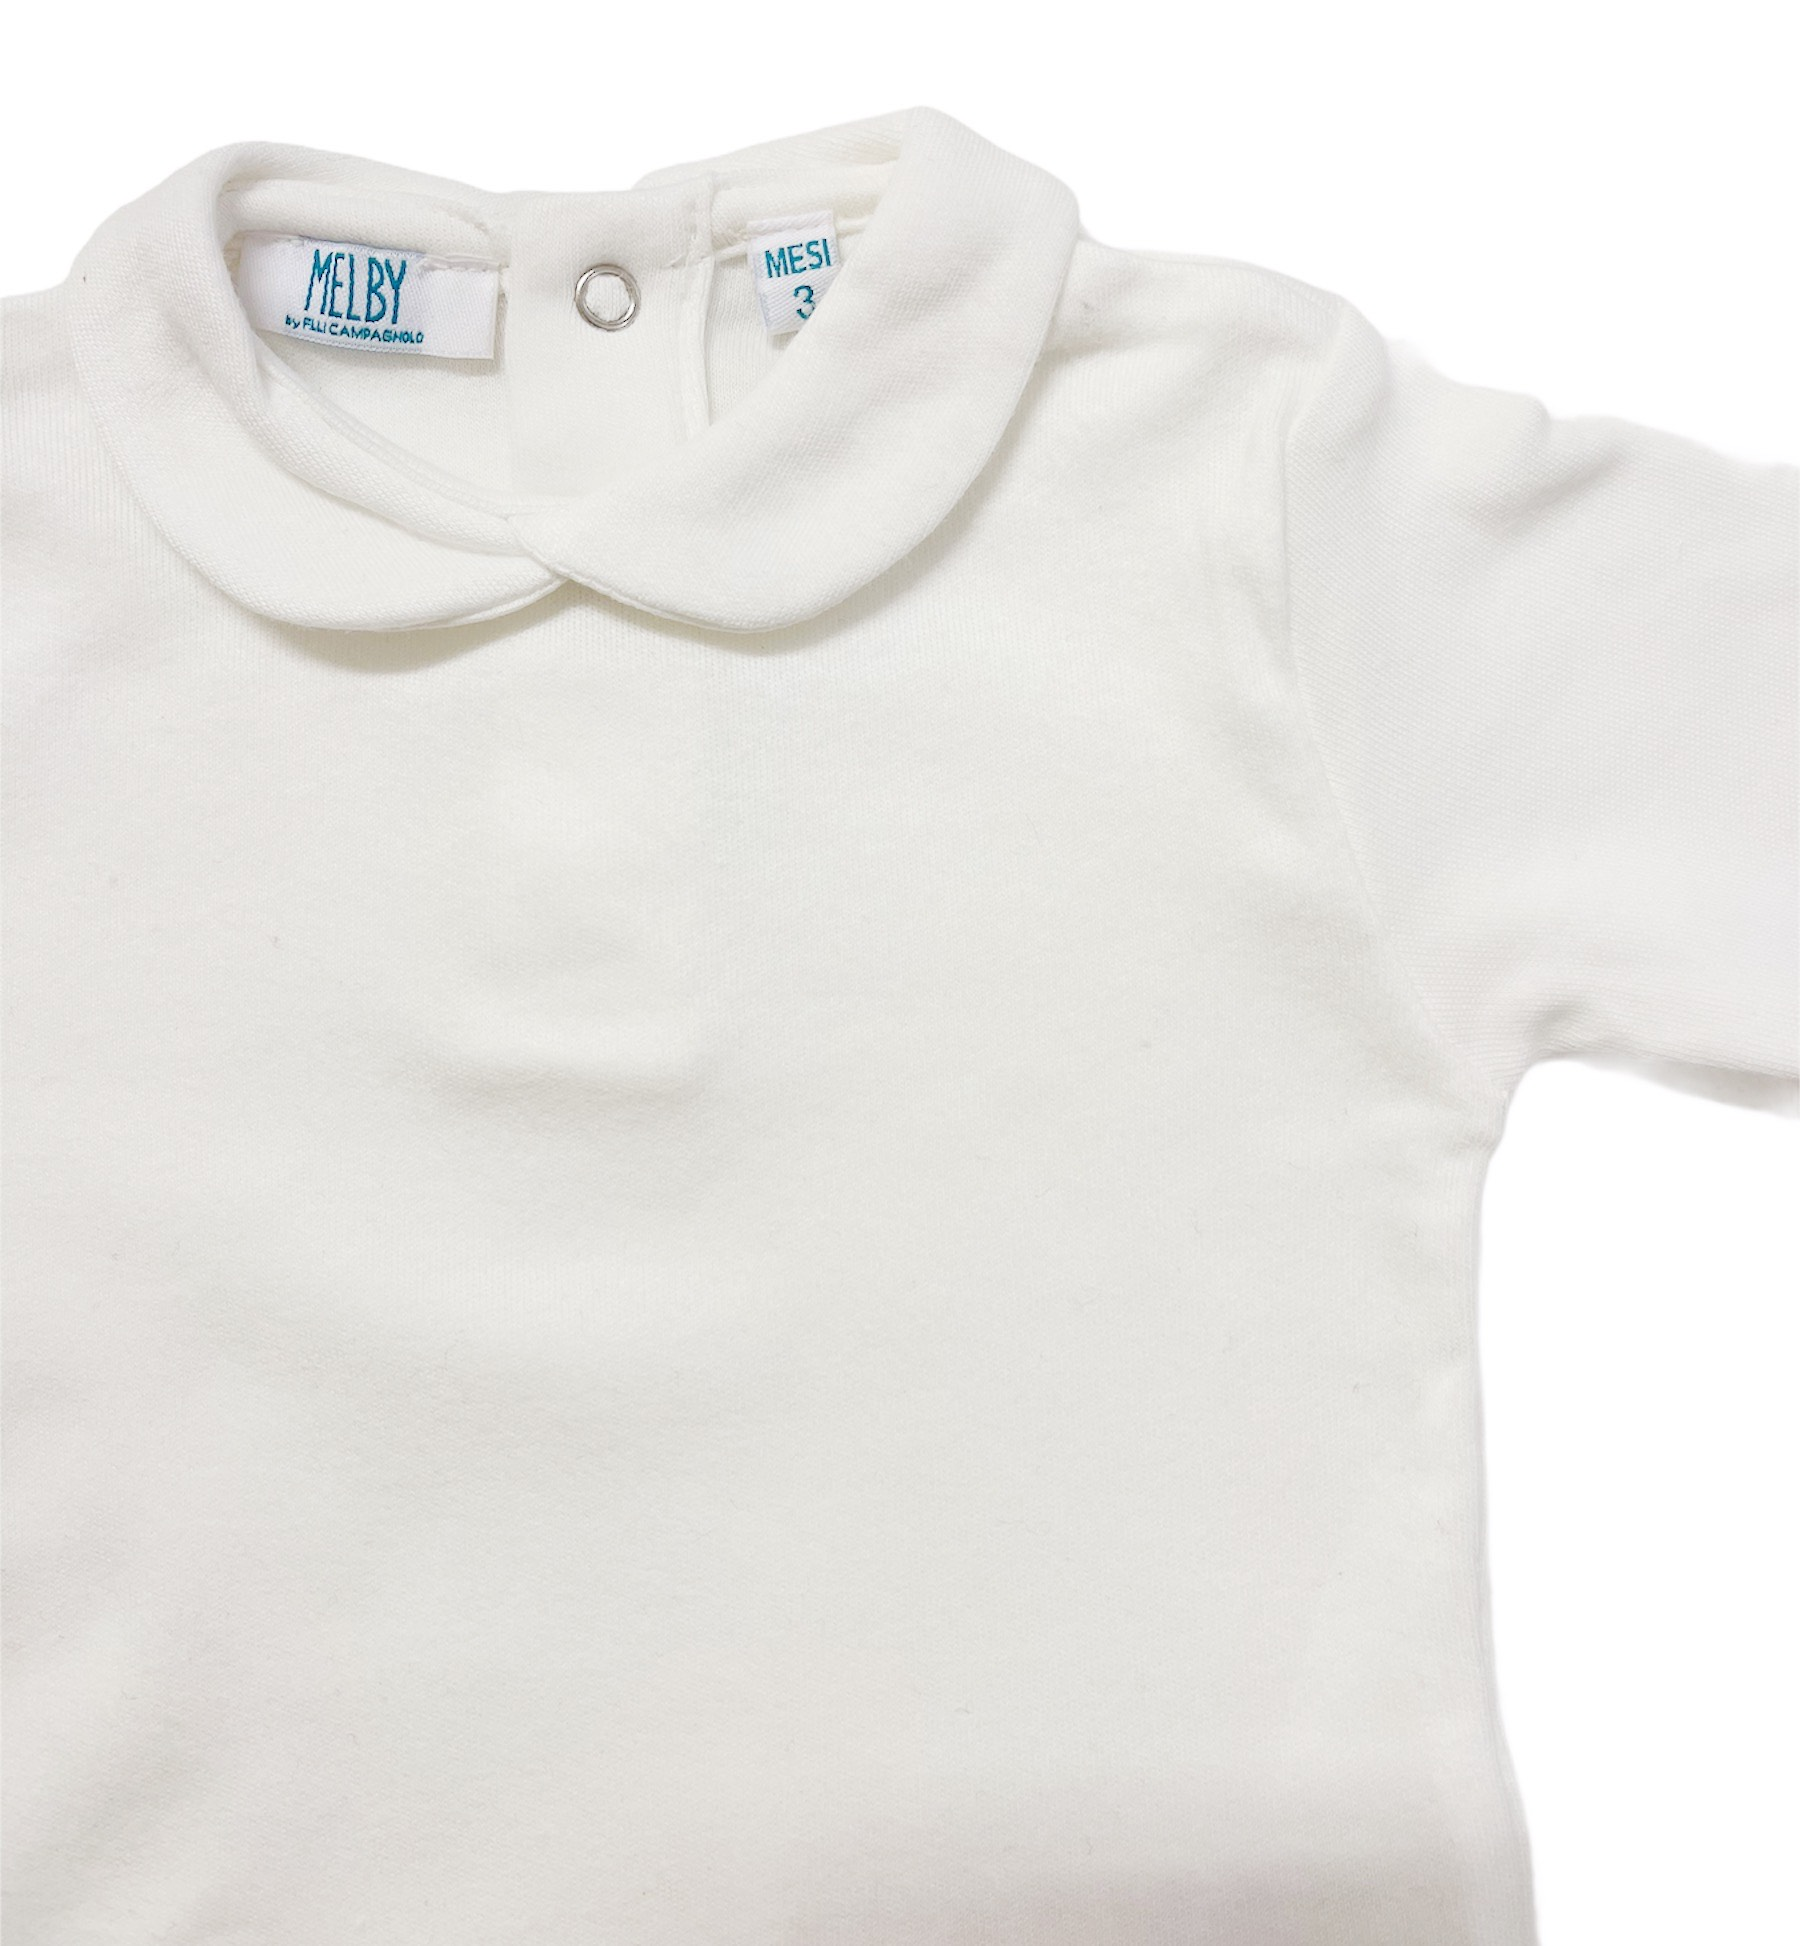 BODY COLLETTO BABY MELBY 3